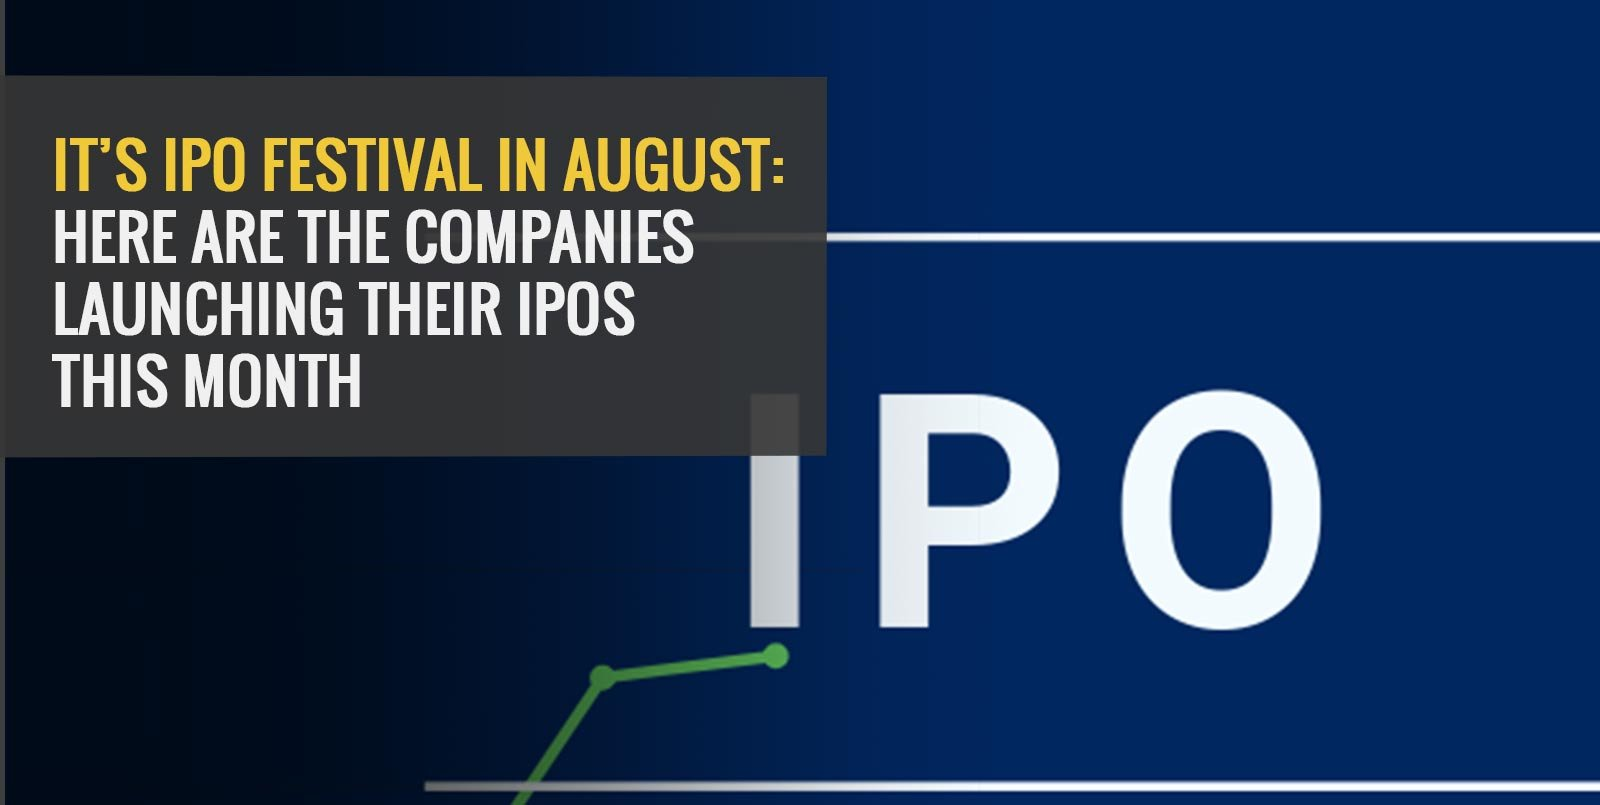 It's IPO Festival in August: Here Are the Companies Launching Their IPOs This Month